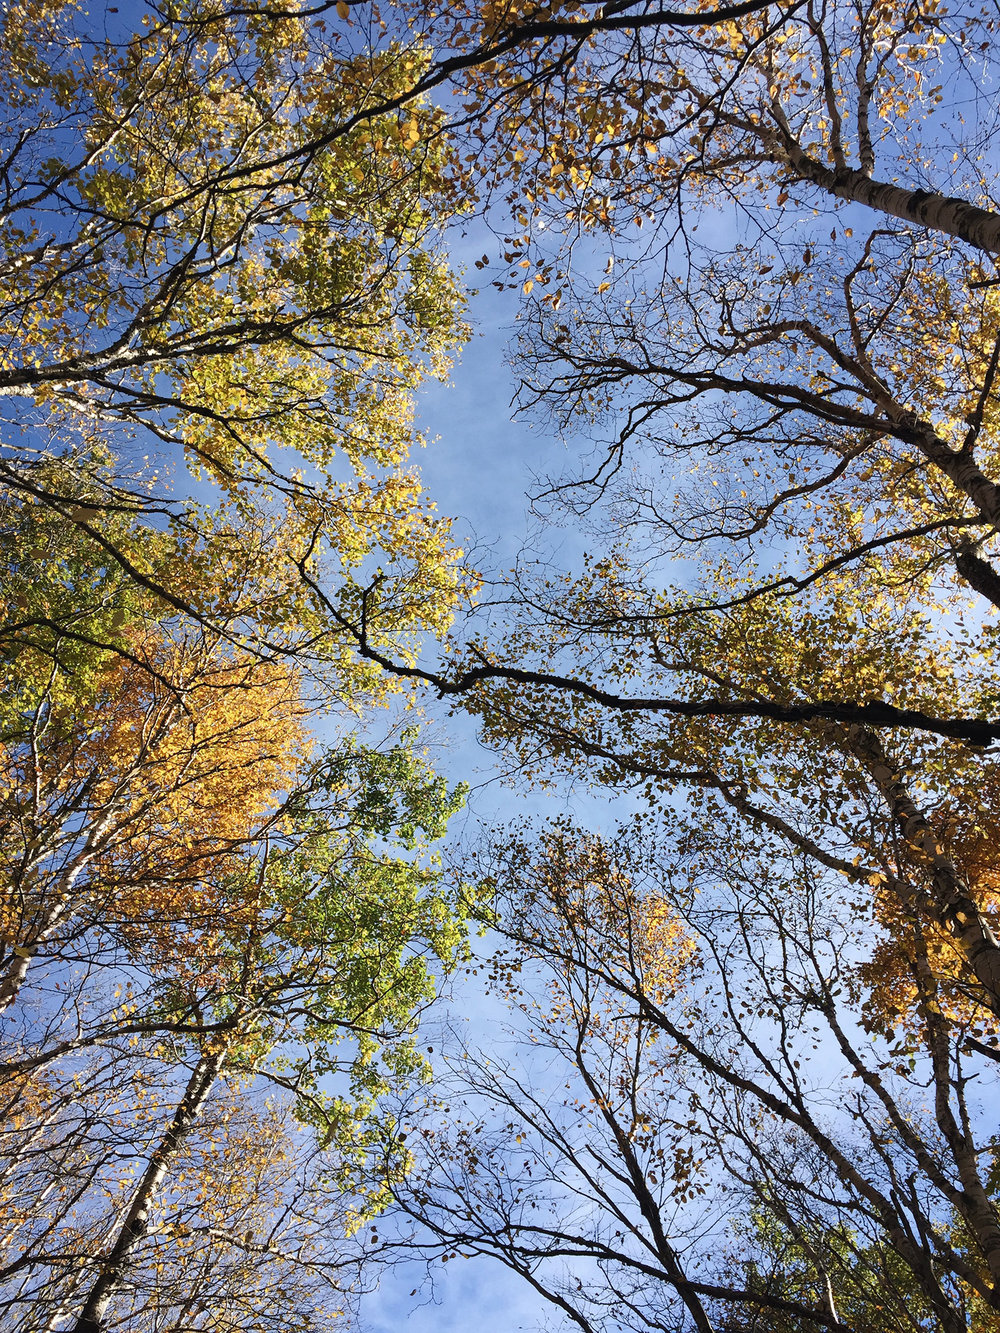 AT ONE POINT WE WERE SURROUNDED BY BEAUTIFUL HUES OF YELLOW AND GREEN. I LOOKED UP AND LOVED WHAT I SAW.